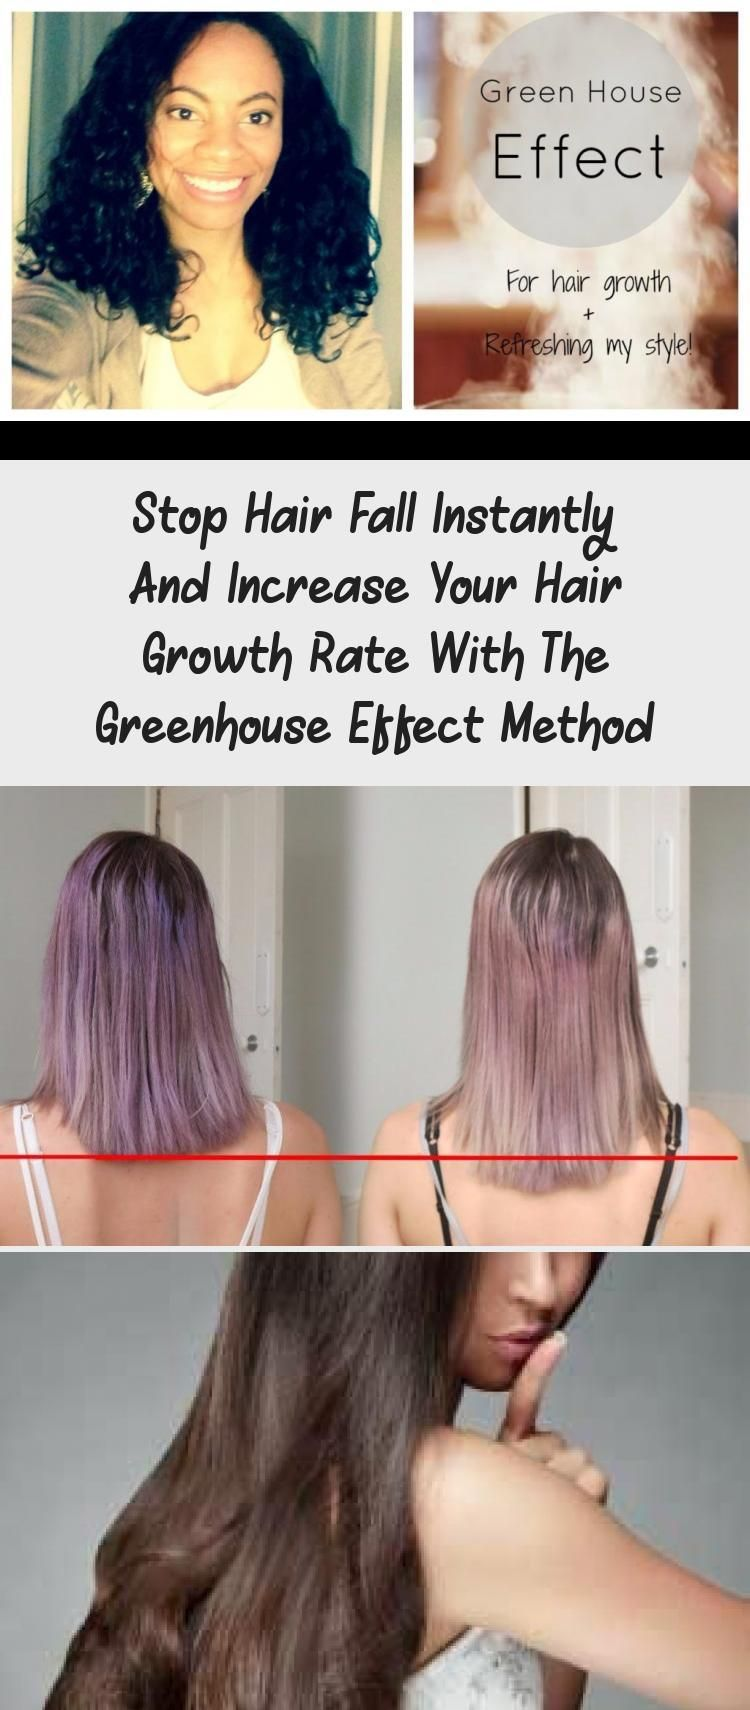 Vitamins for Hair Growth} and Stop Hair Fall Instantly and Increase Your Hair Growth Rate With The Greenhouse Effect Method #Babyhairgrowth #hairgrowthDoterra #hairgrowthProgress #RiceWaterhairgrowth #hairgrowthPictures